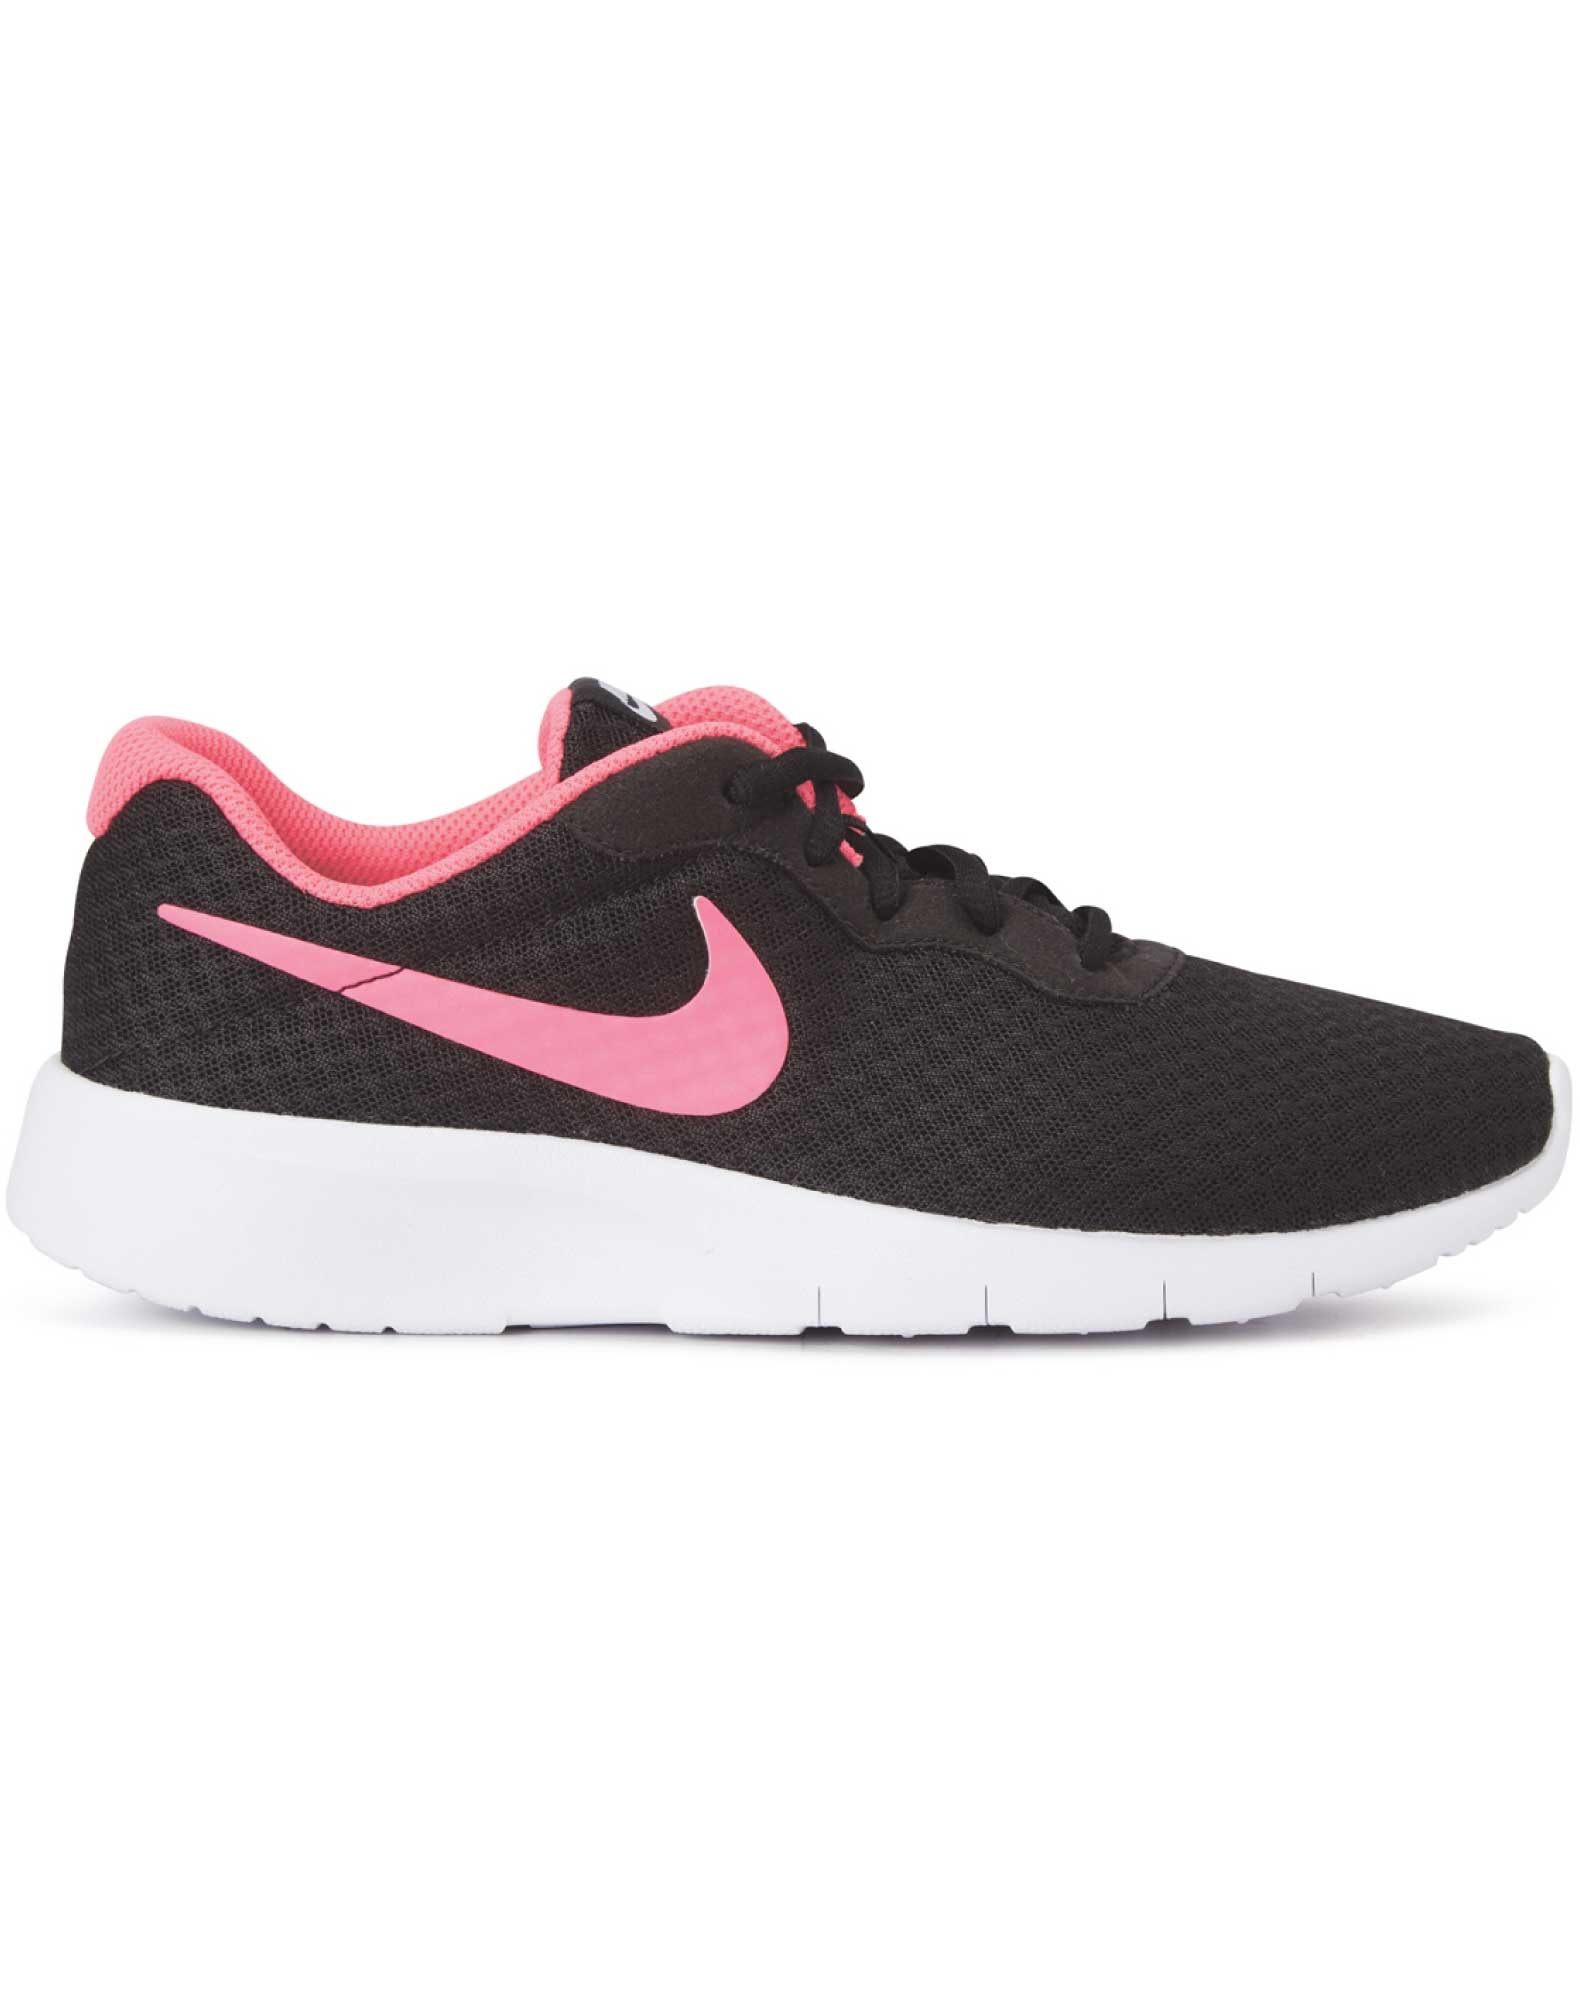 442b648d2e1 Køb Nike Sneakers Tanjun Pink Sort (gs) Junior